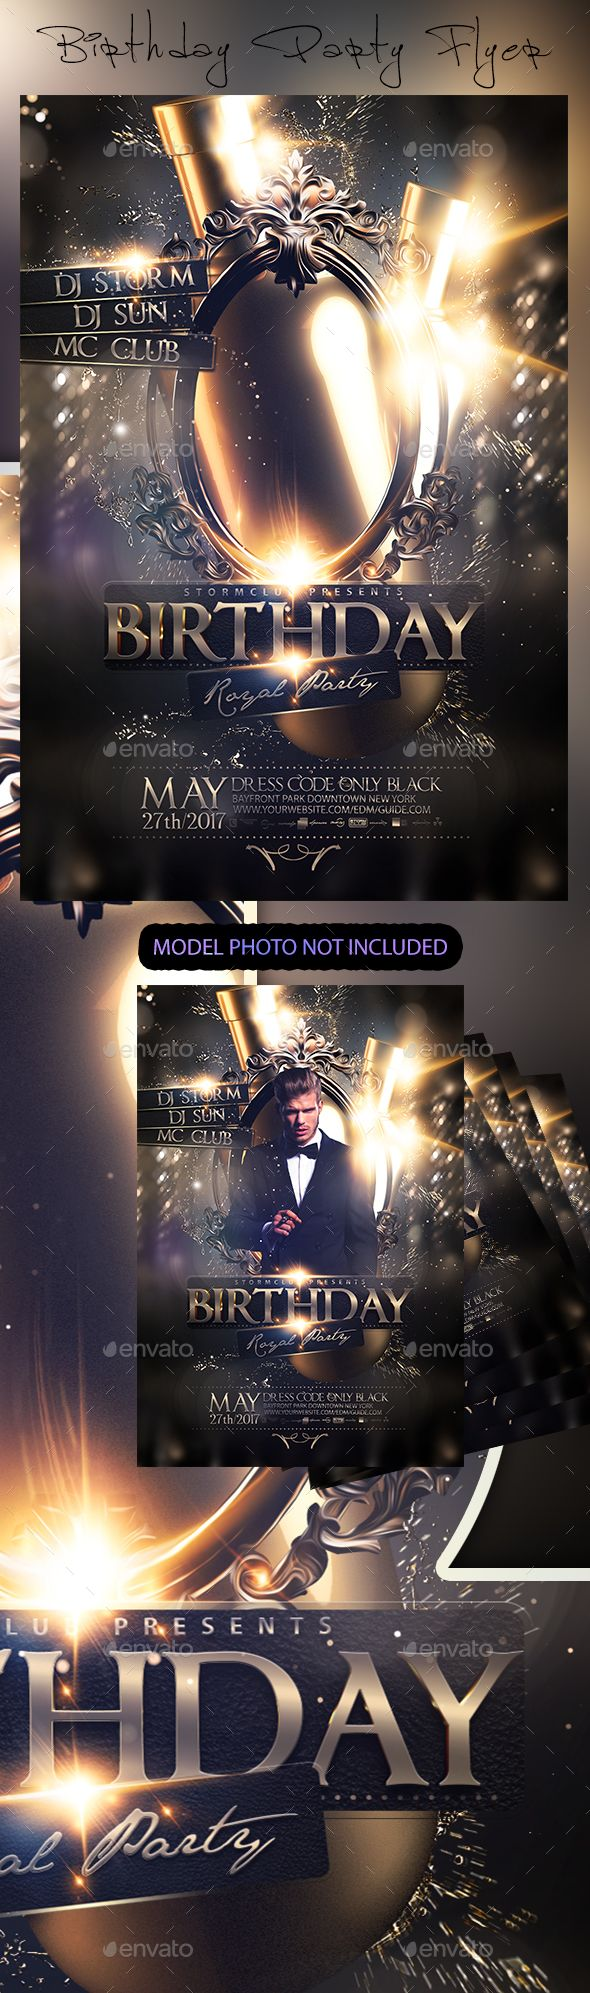 D d poster design - Birthday Party Flyer Template Psd Download Here